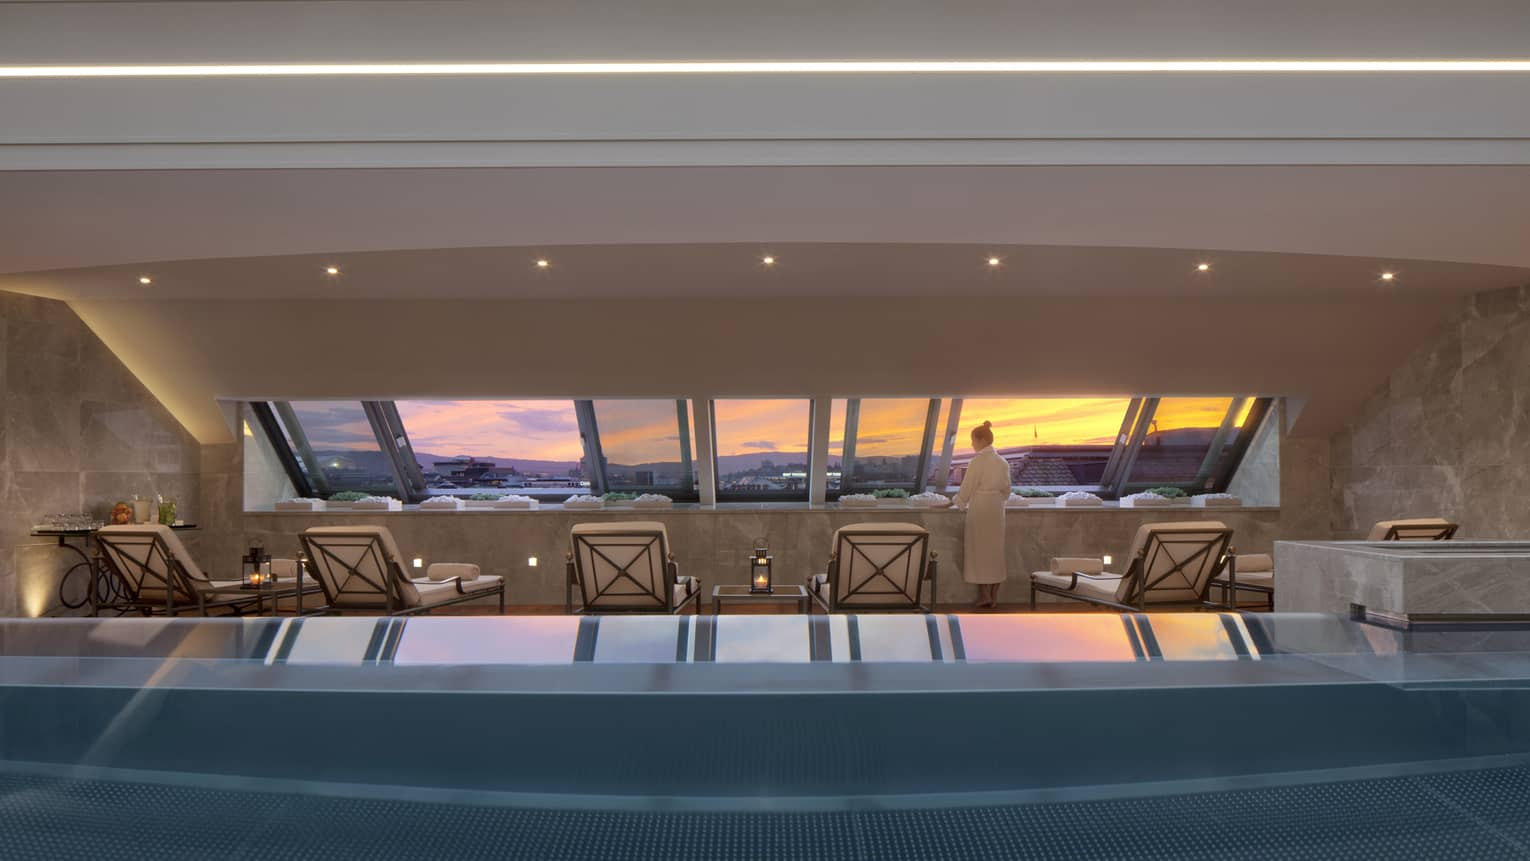 Woman in robe stands on deck beside blue indoor swimming pool, lounge chairs, looking at sunset through window